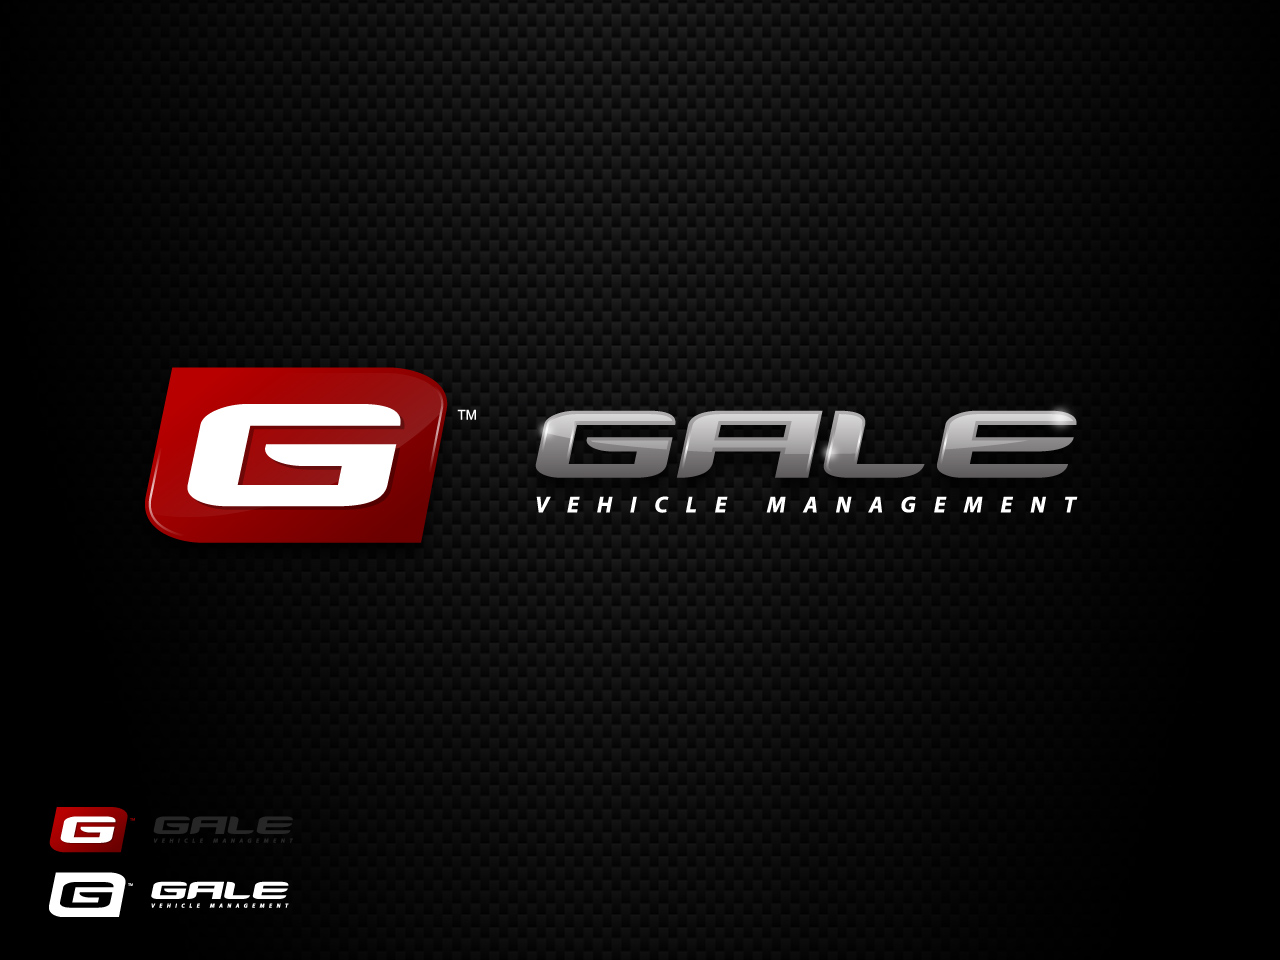 Logo Design by jpbituin - Entry No. 144 in the Logo Design Contest Artistic Logo Design for Gale Vehicle Management.